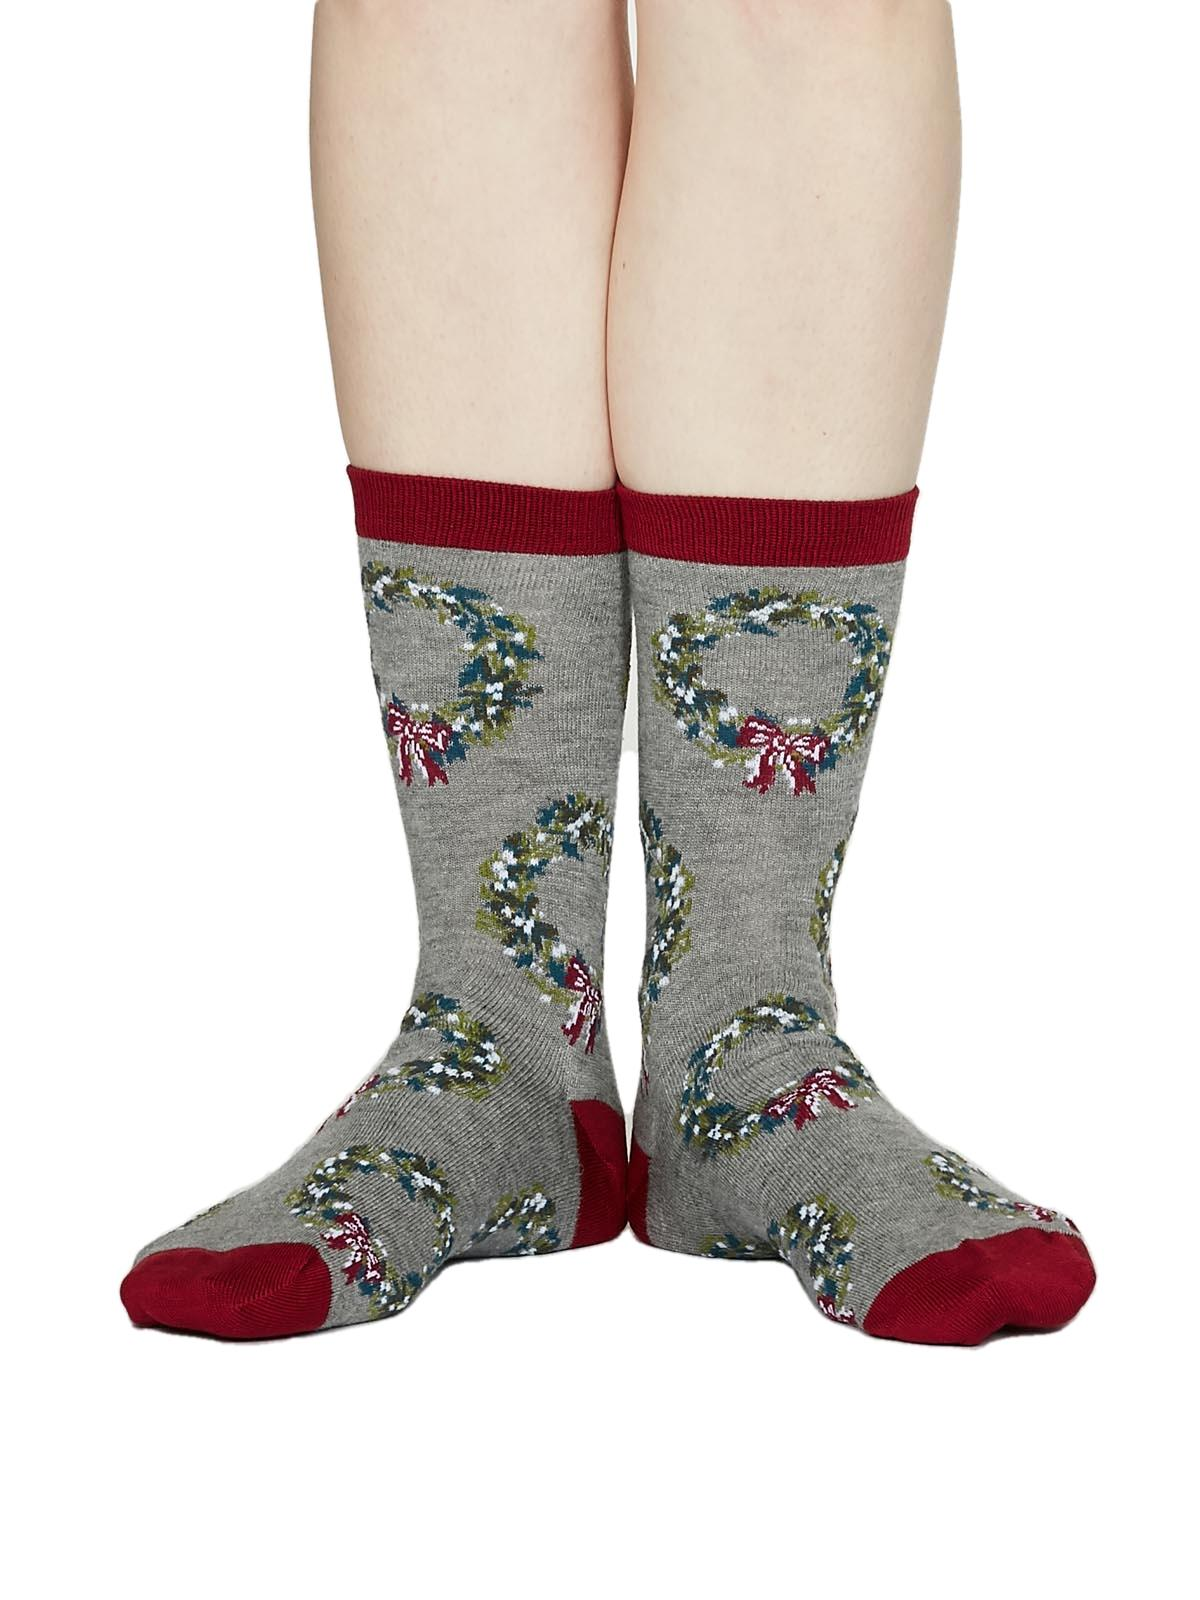 Ladies Soft Bamboo Adella Bamboo Christmas Wreath Socks Size 4-7 by Thought